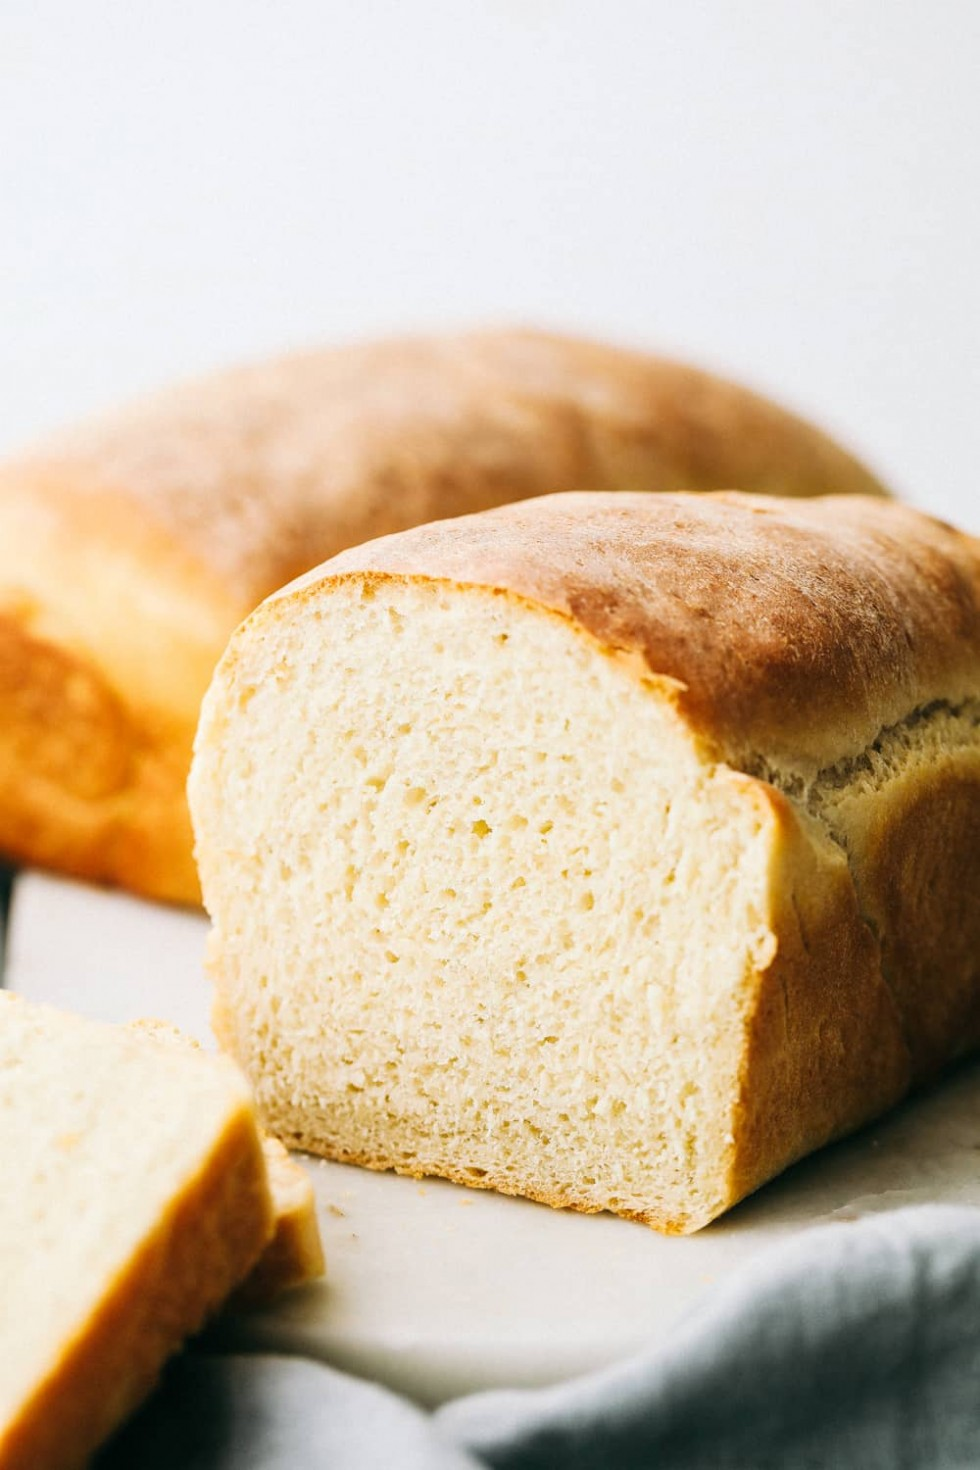 Why is homemade bread so good?